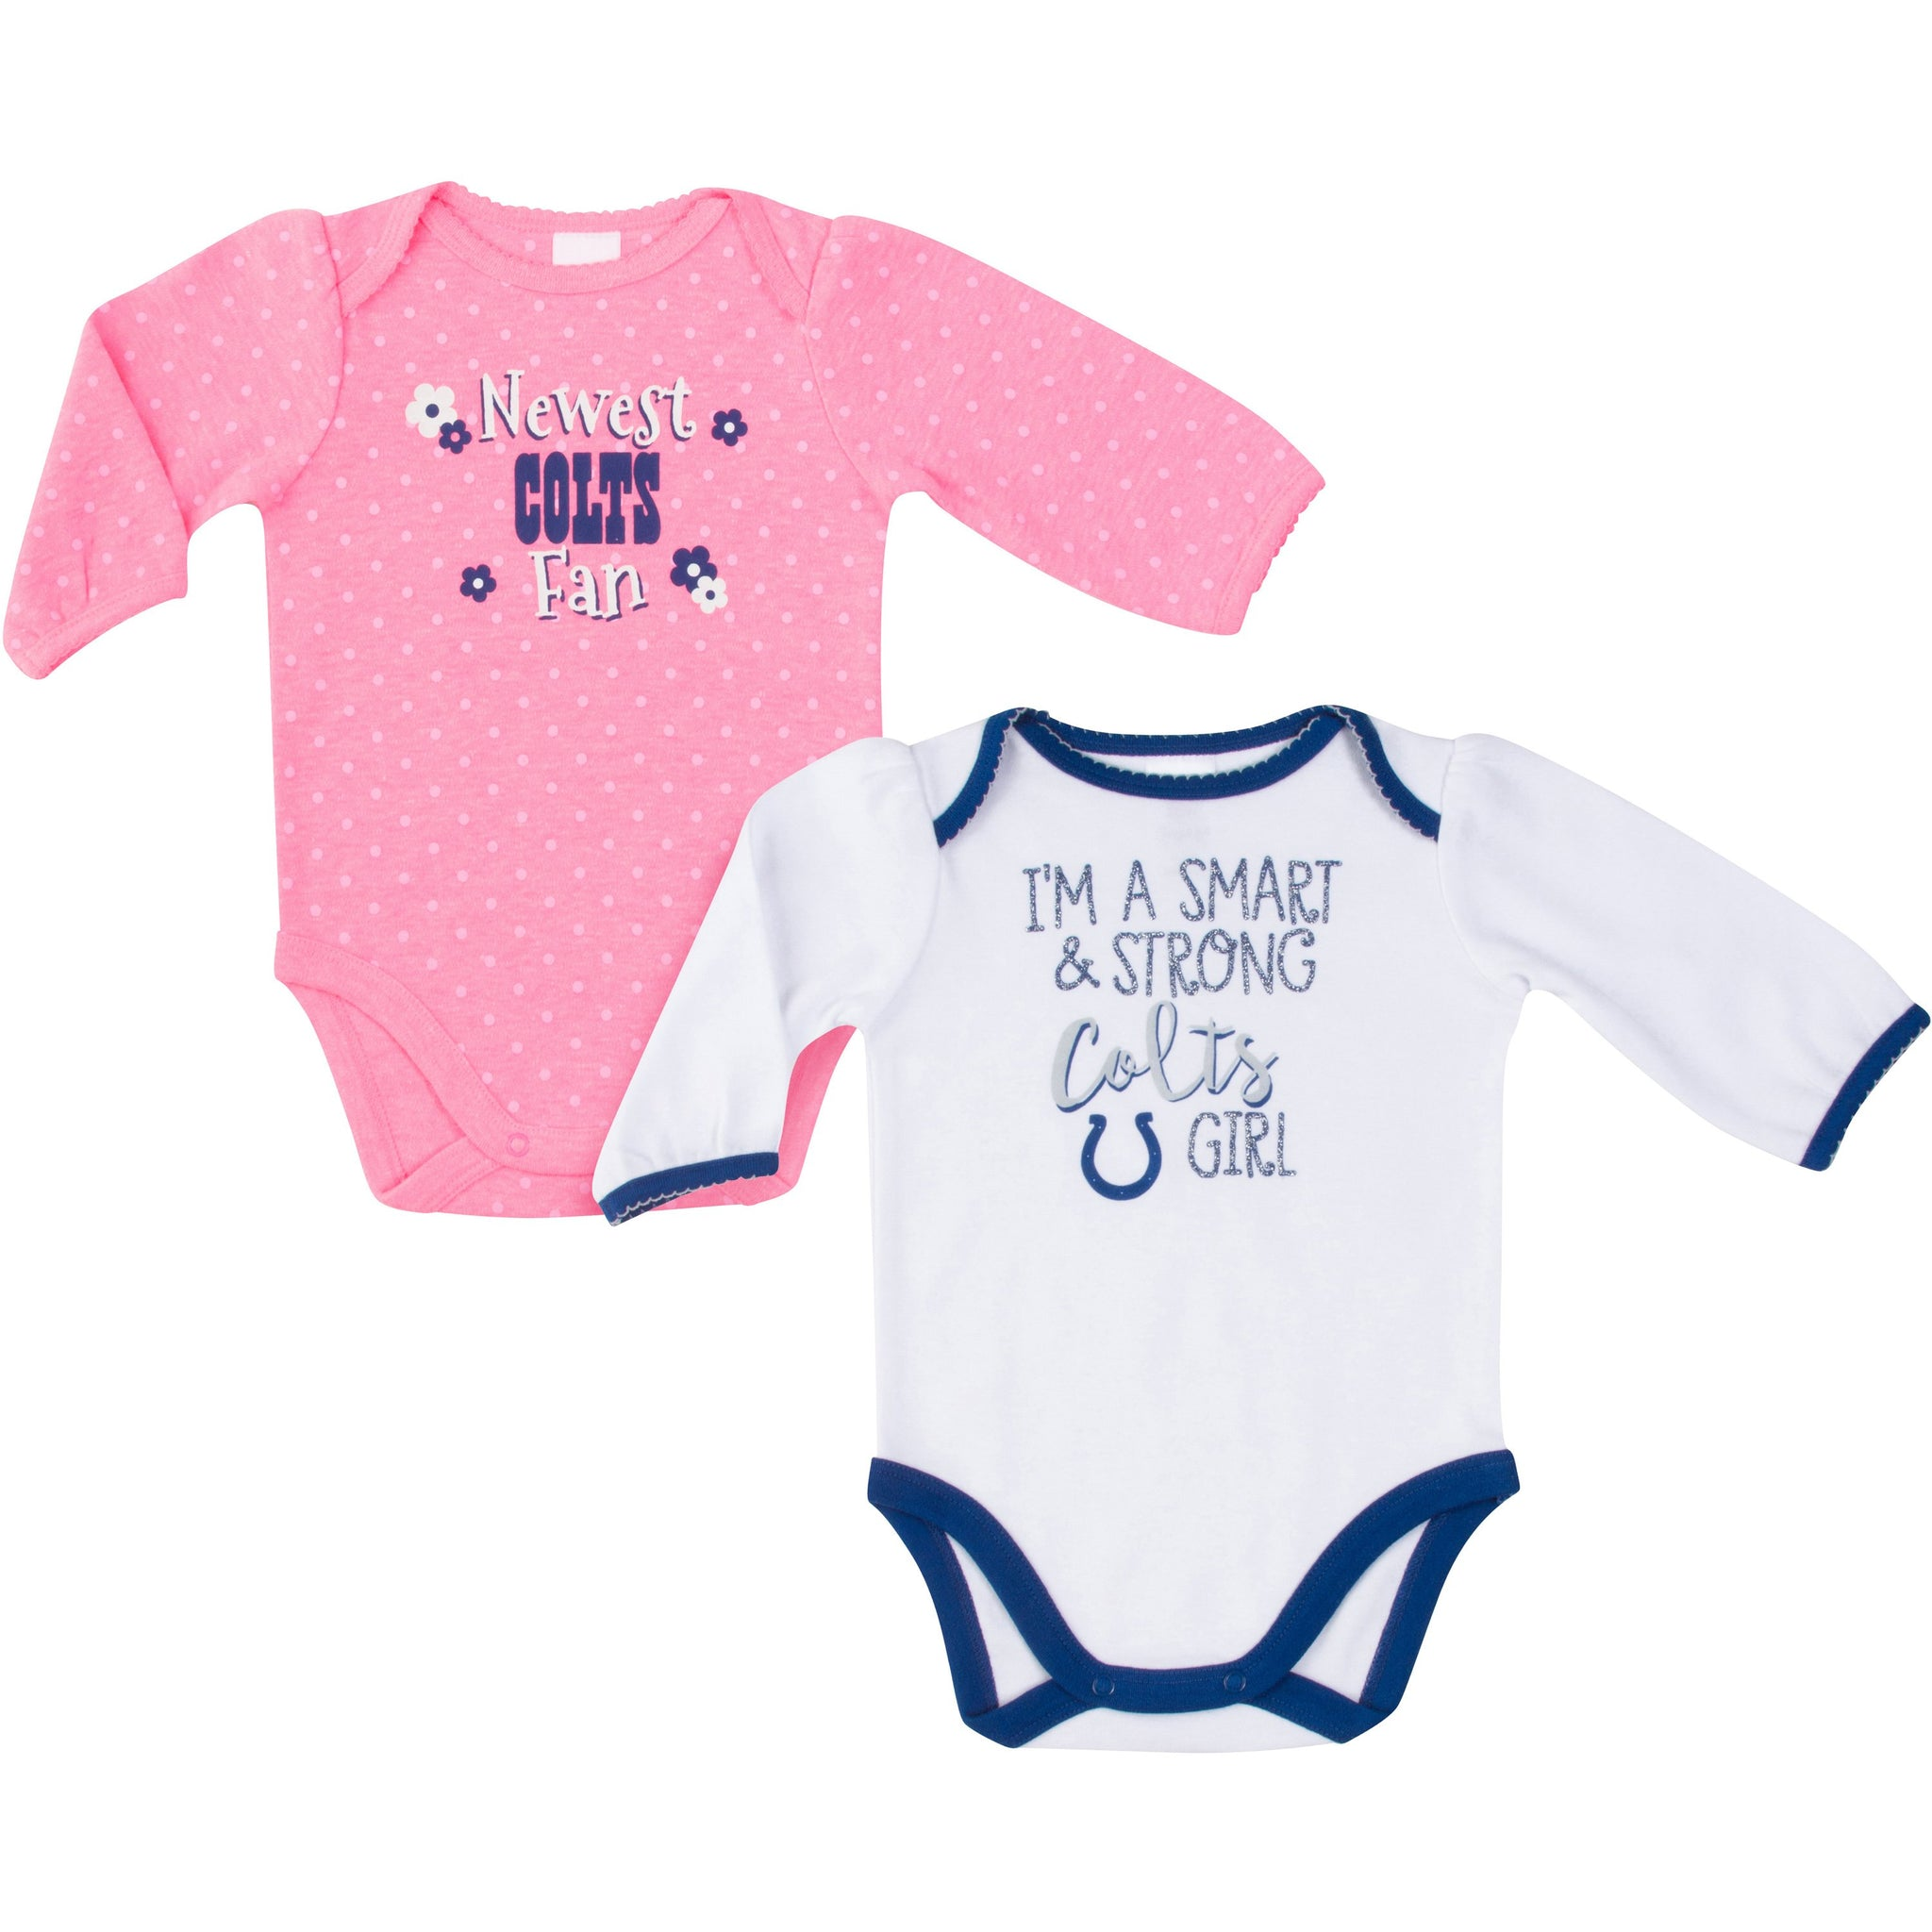 Indianapolis Colts Baby Girl Long Sleeve Bodysuit, 2-pack -Gerber Childrenswear